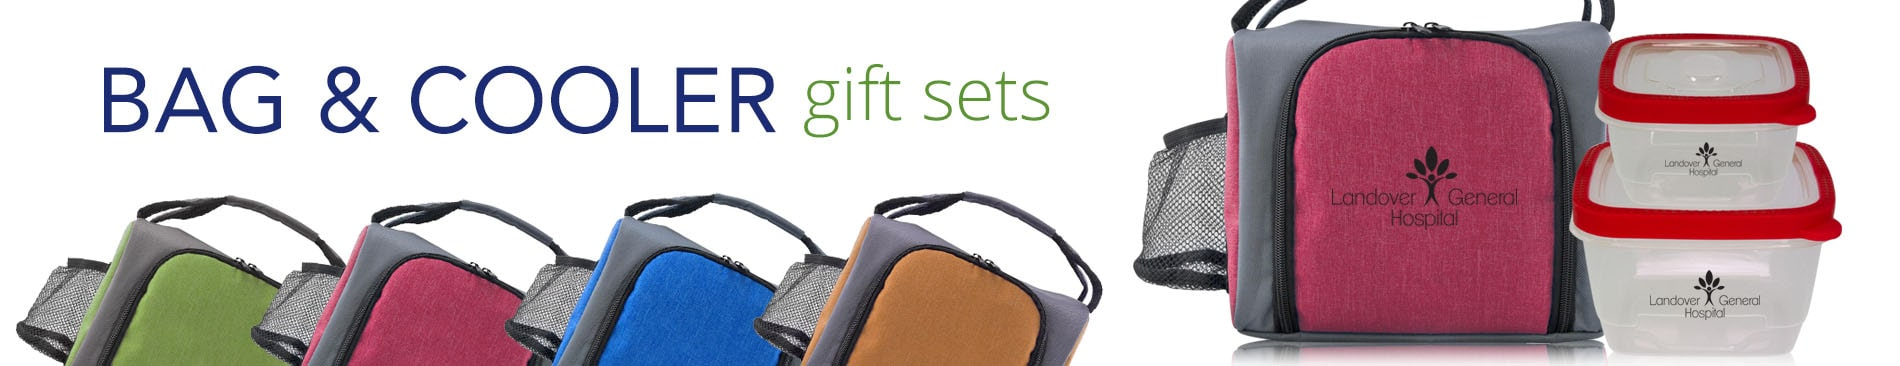 Bag & Cooler Gift Sets